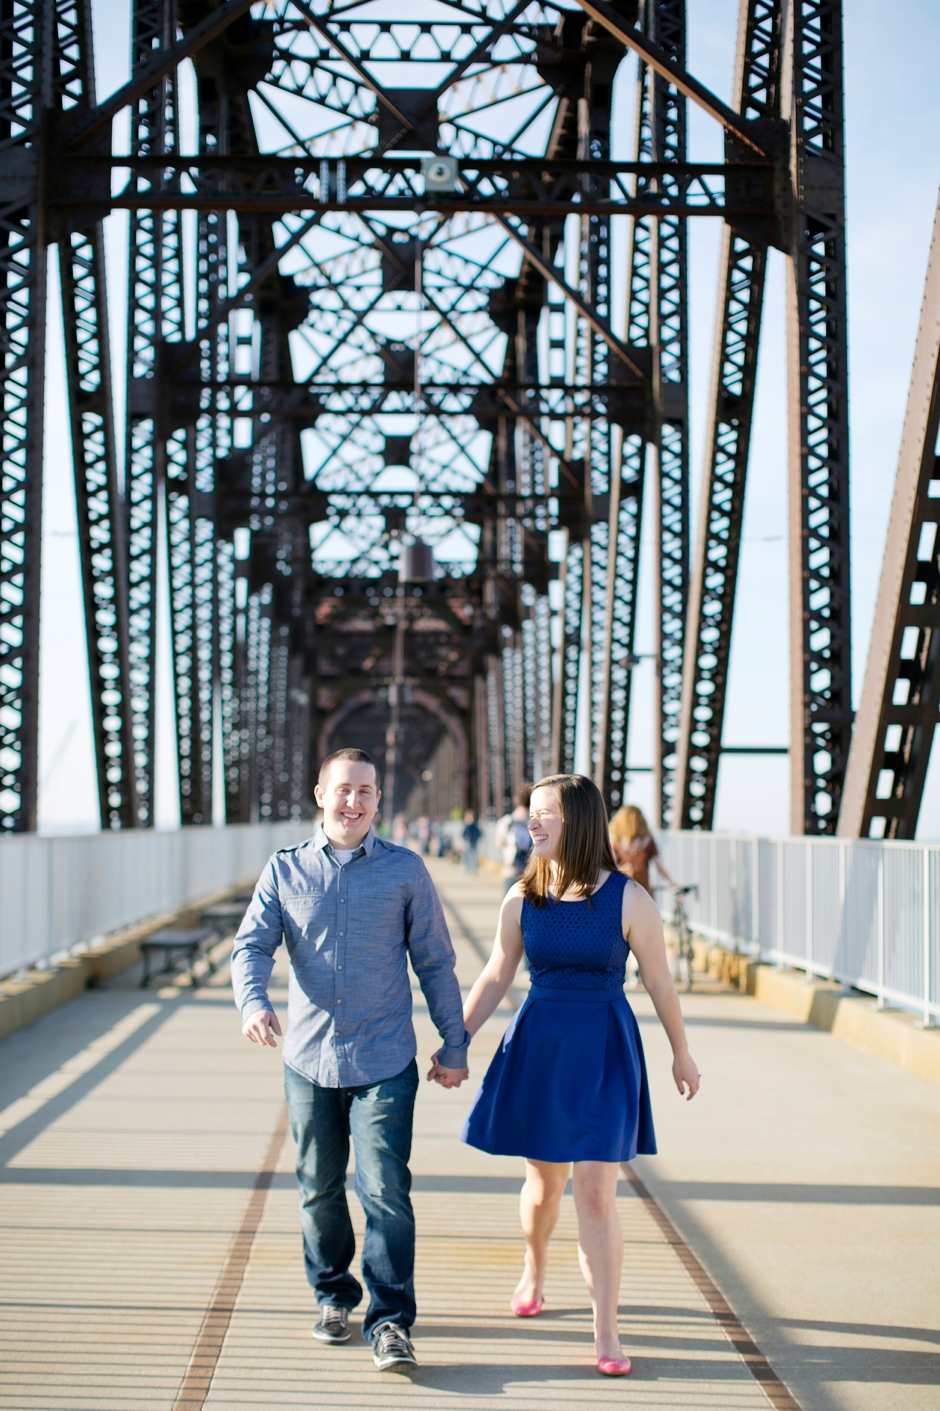 downtown-louisville-engagement-photos-133